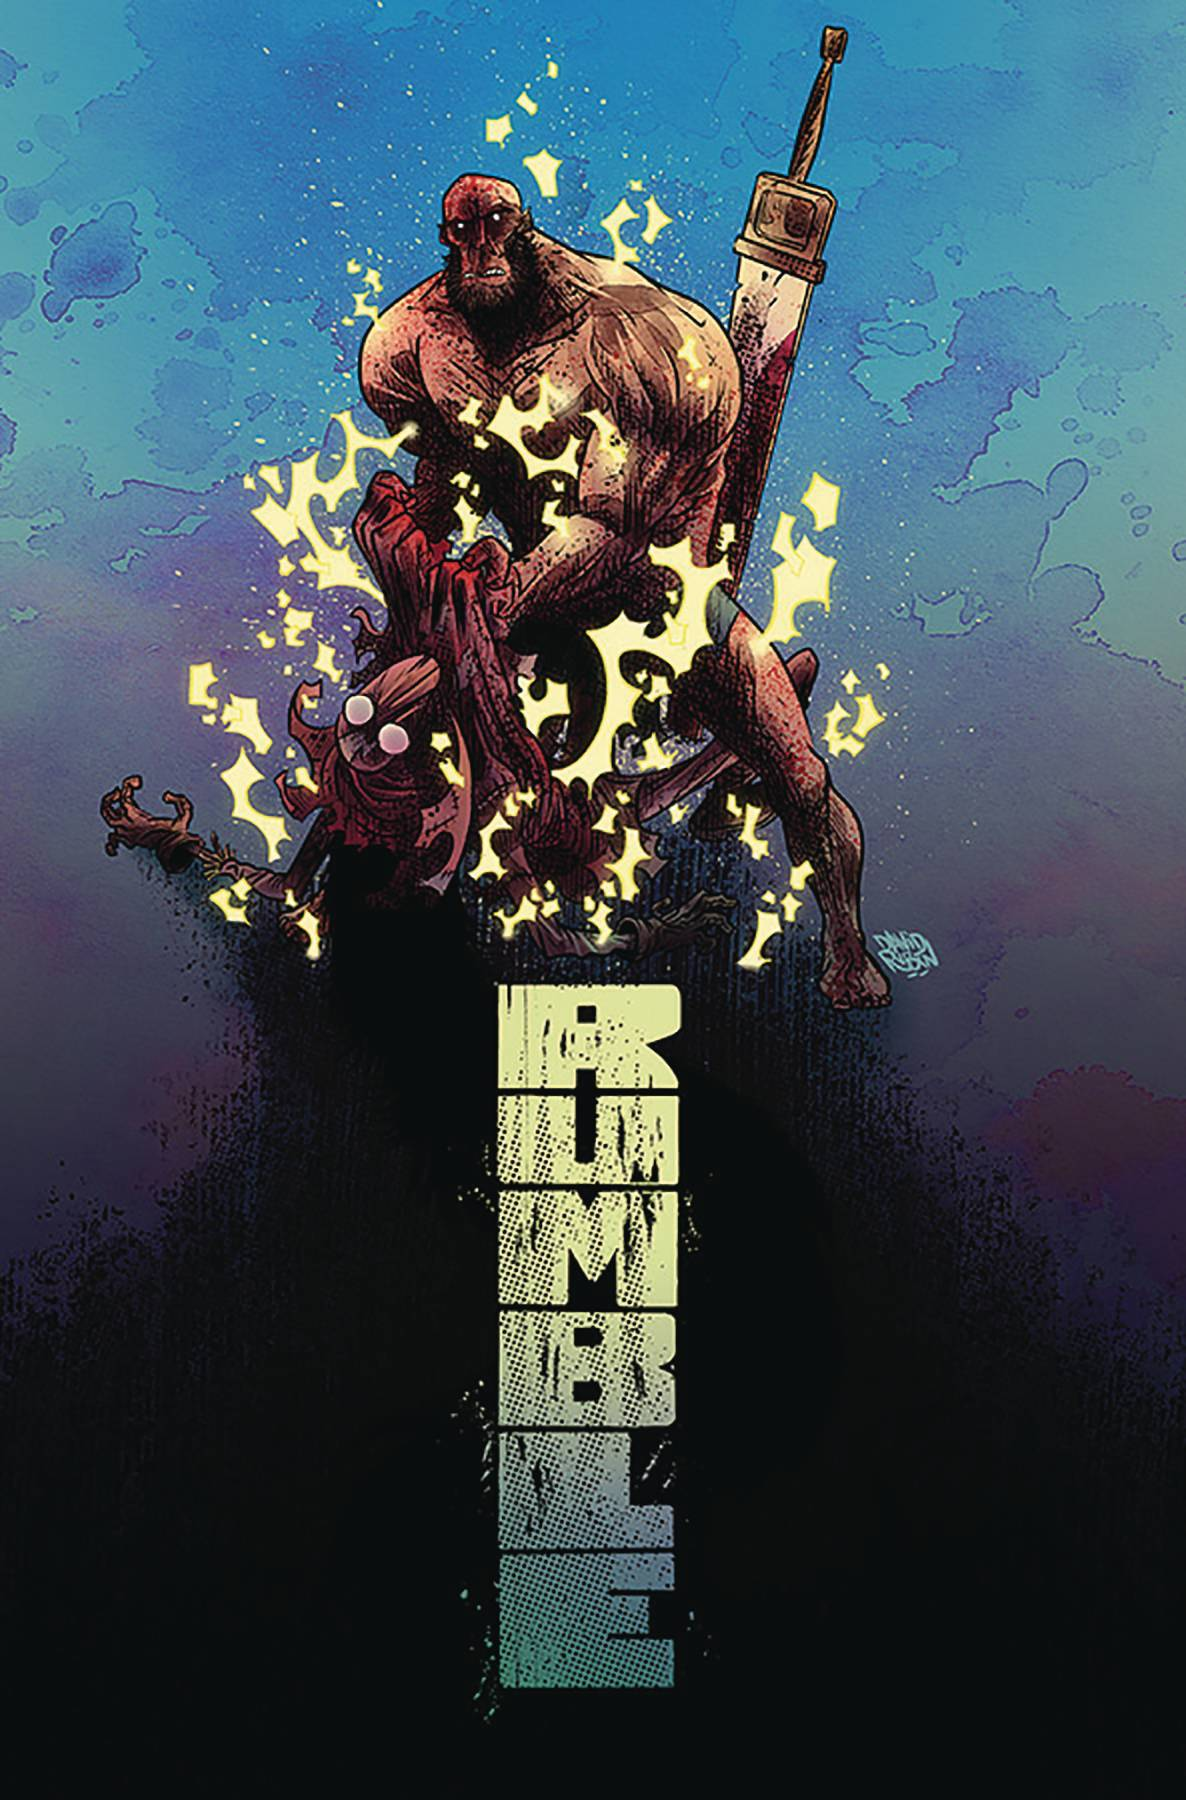 RUMBLE TP VOL 05 THINGS REMOTE (DEC180172) (MR)